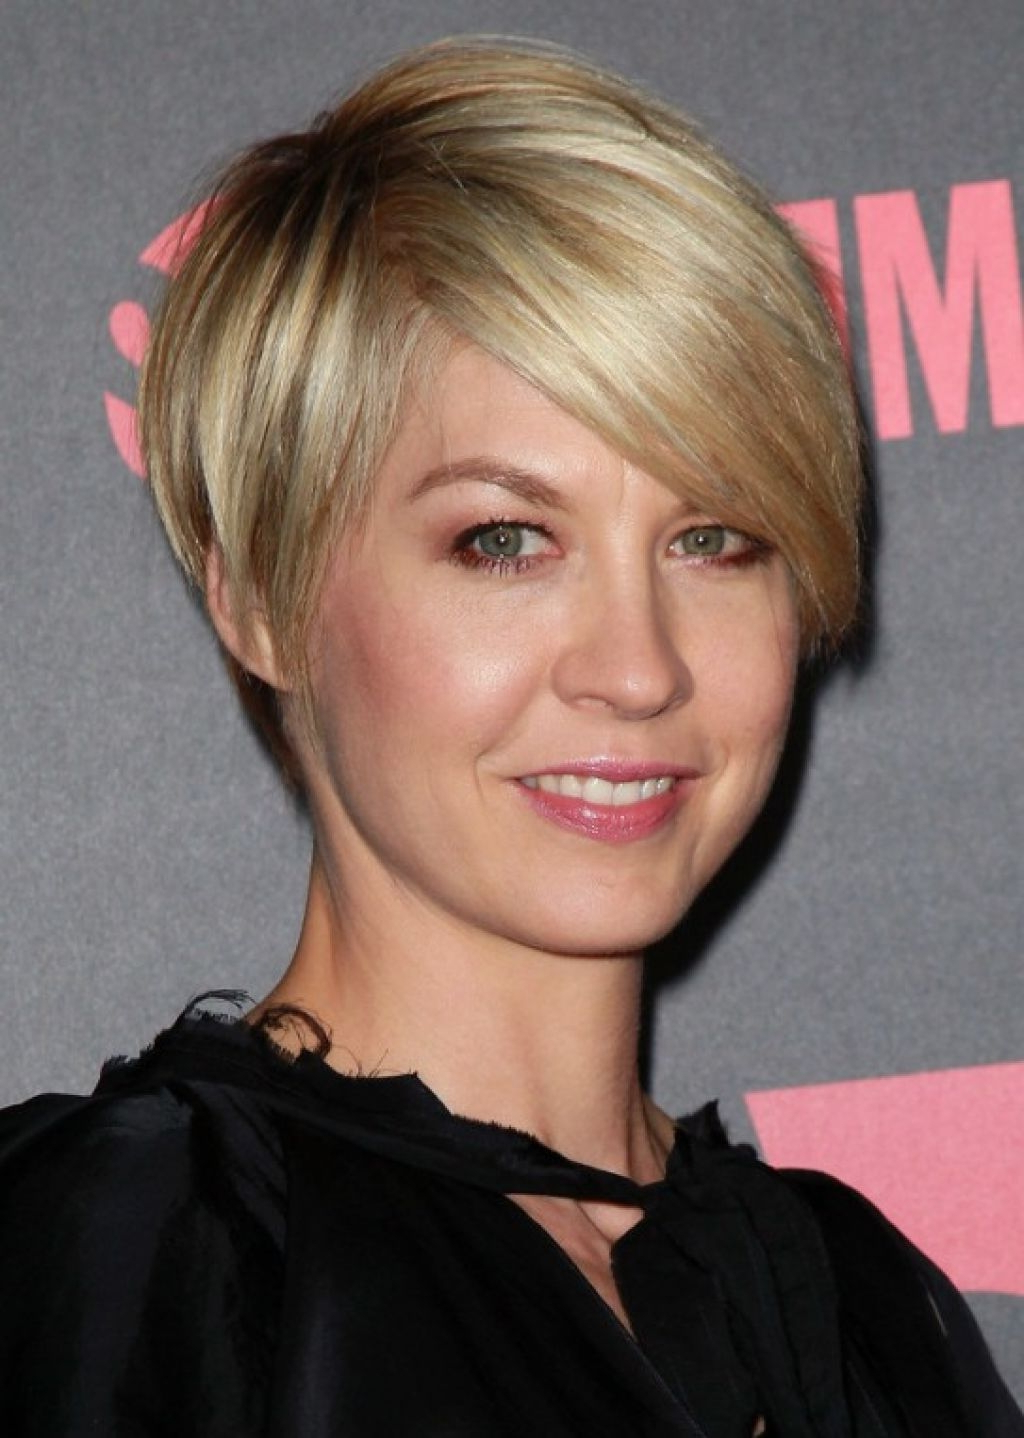 Beautiful Medium Short Hairstyles For Thin Hair Gallery Styles Under In Short Hairstyles For Thin Fine Hair (View 17 of 25)